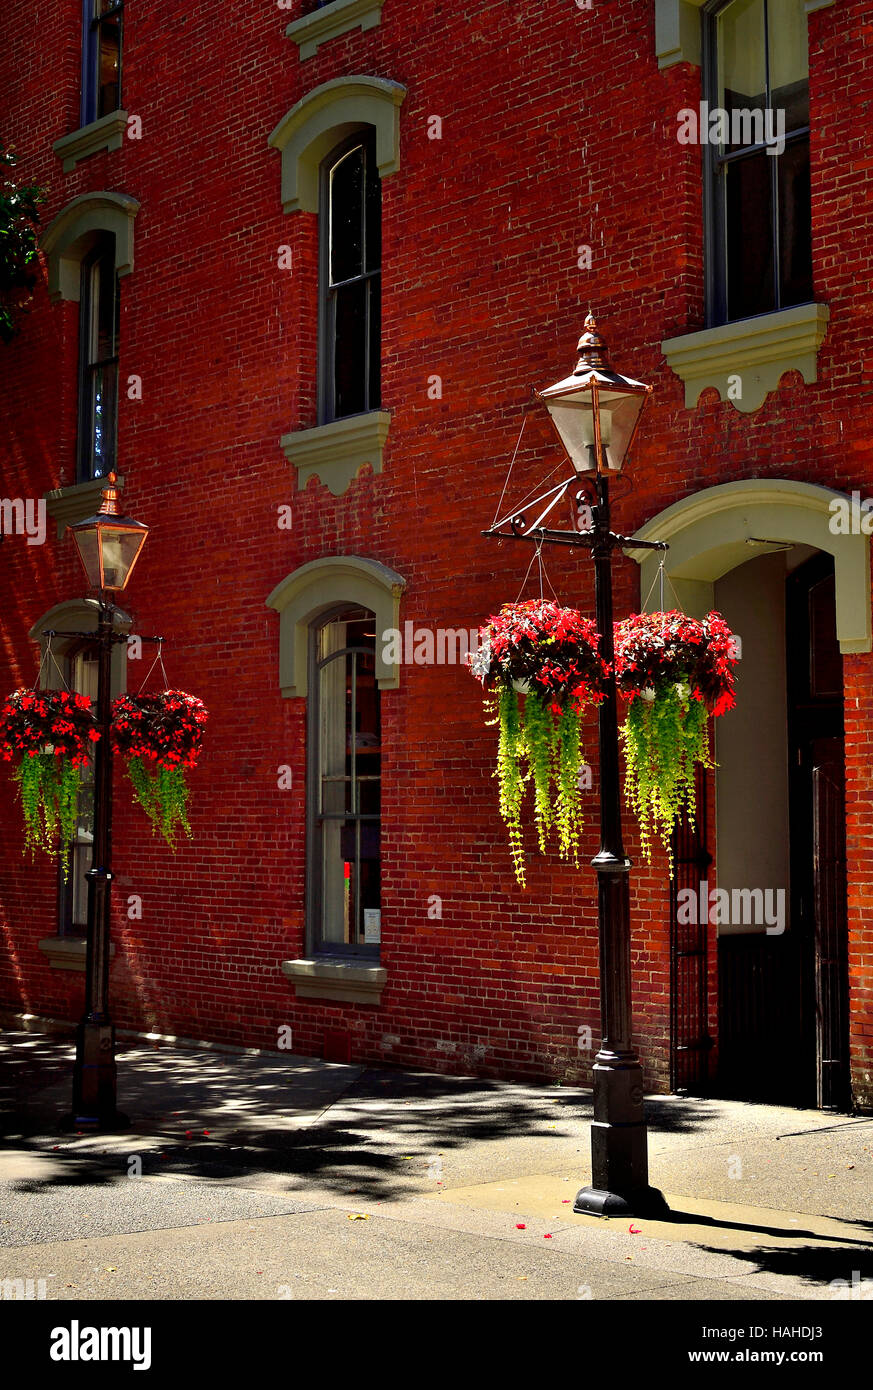 Street lights with flower baskets in front of a brick building - Stock Image